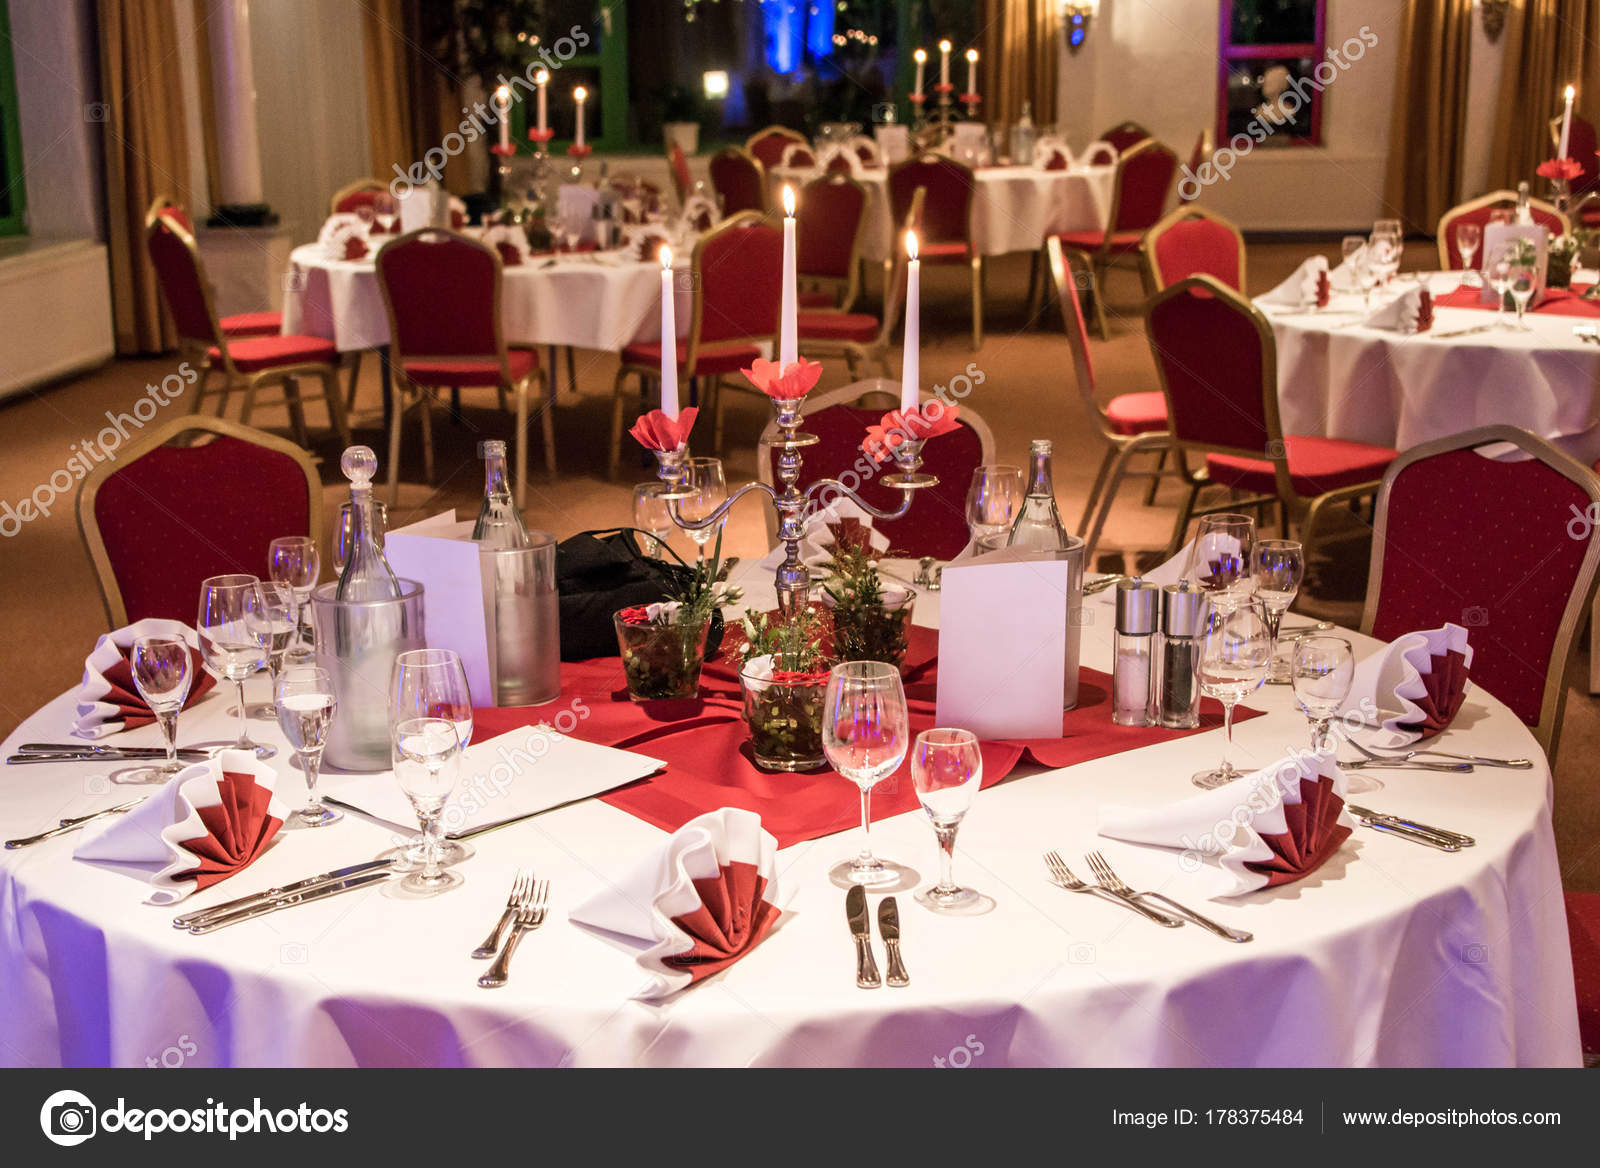 Banquet with red table setting Red tablecloth white dishes silver cutlery and glasses plus some decorations white copy text space card u2014 Photo by donogl & Banquet with red table setting tablecloth white dishes silver ...